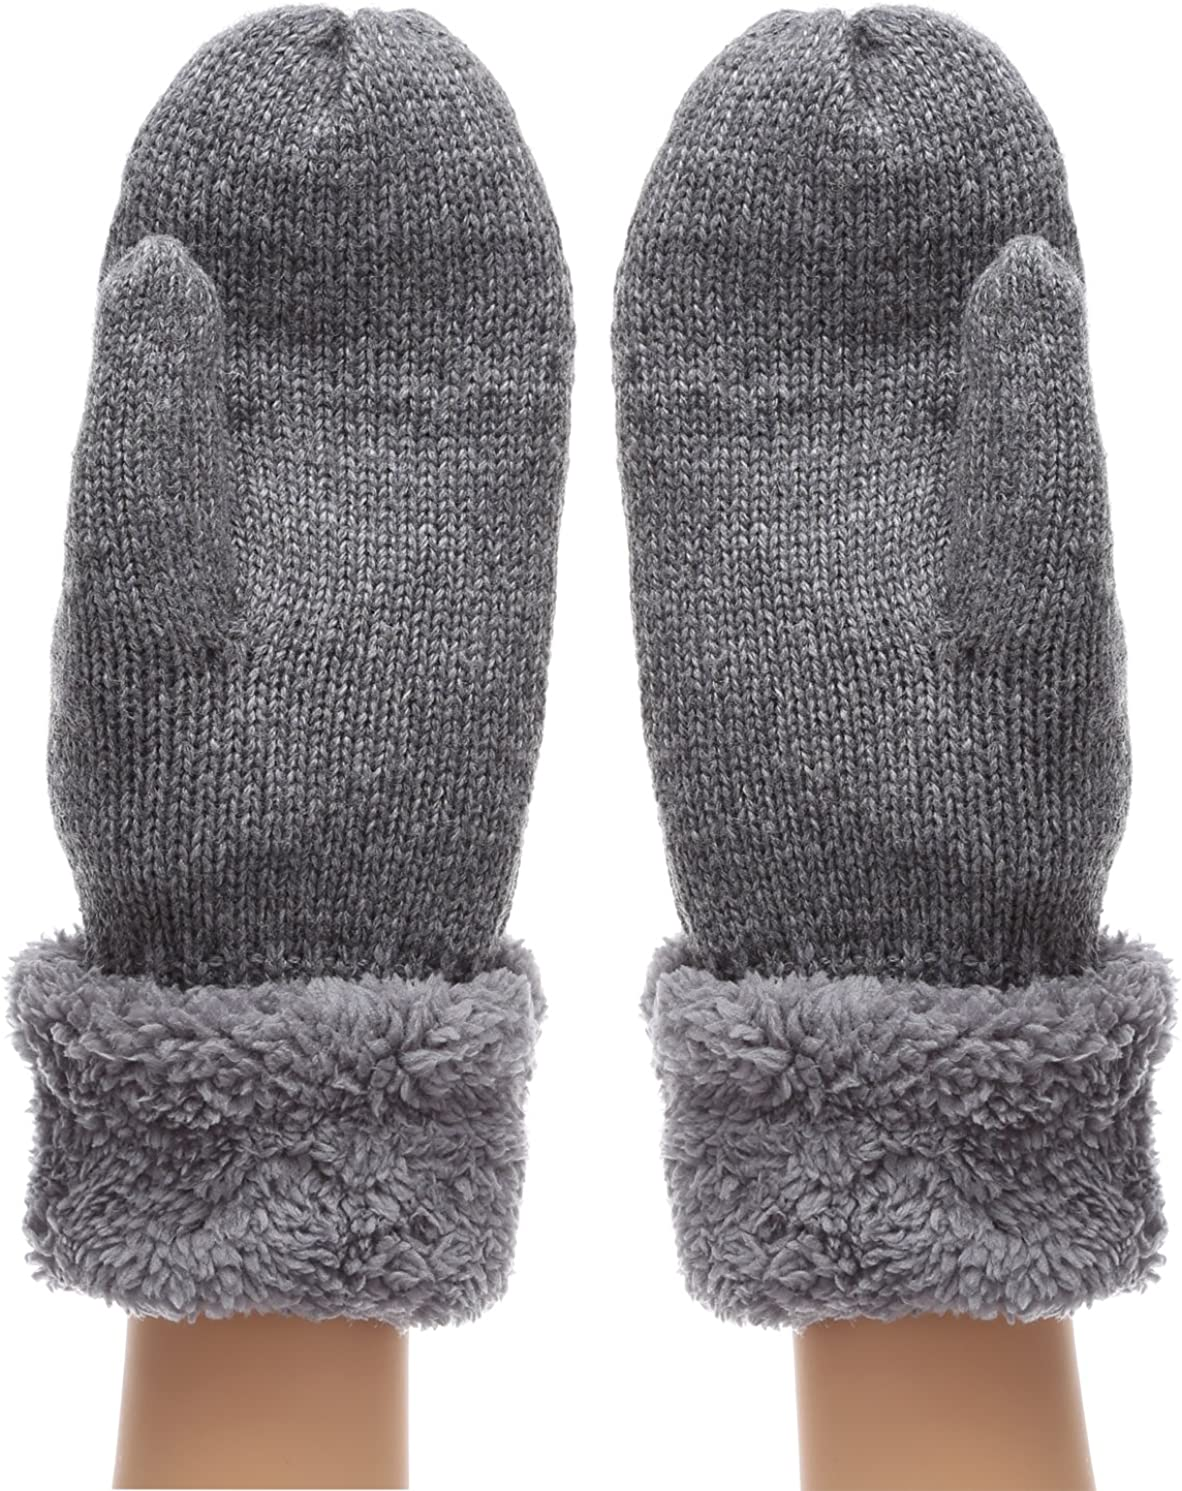 Women's Winter Warm Cable Knitted Mitten Plush Lining Gloves with Hair Tie.